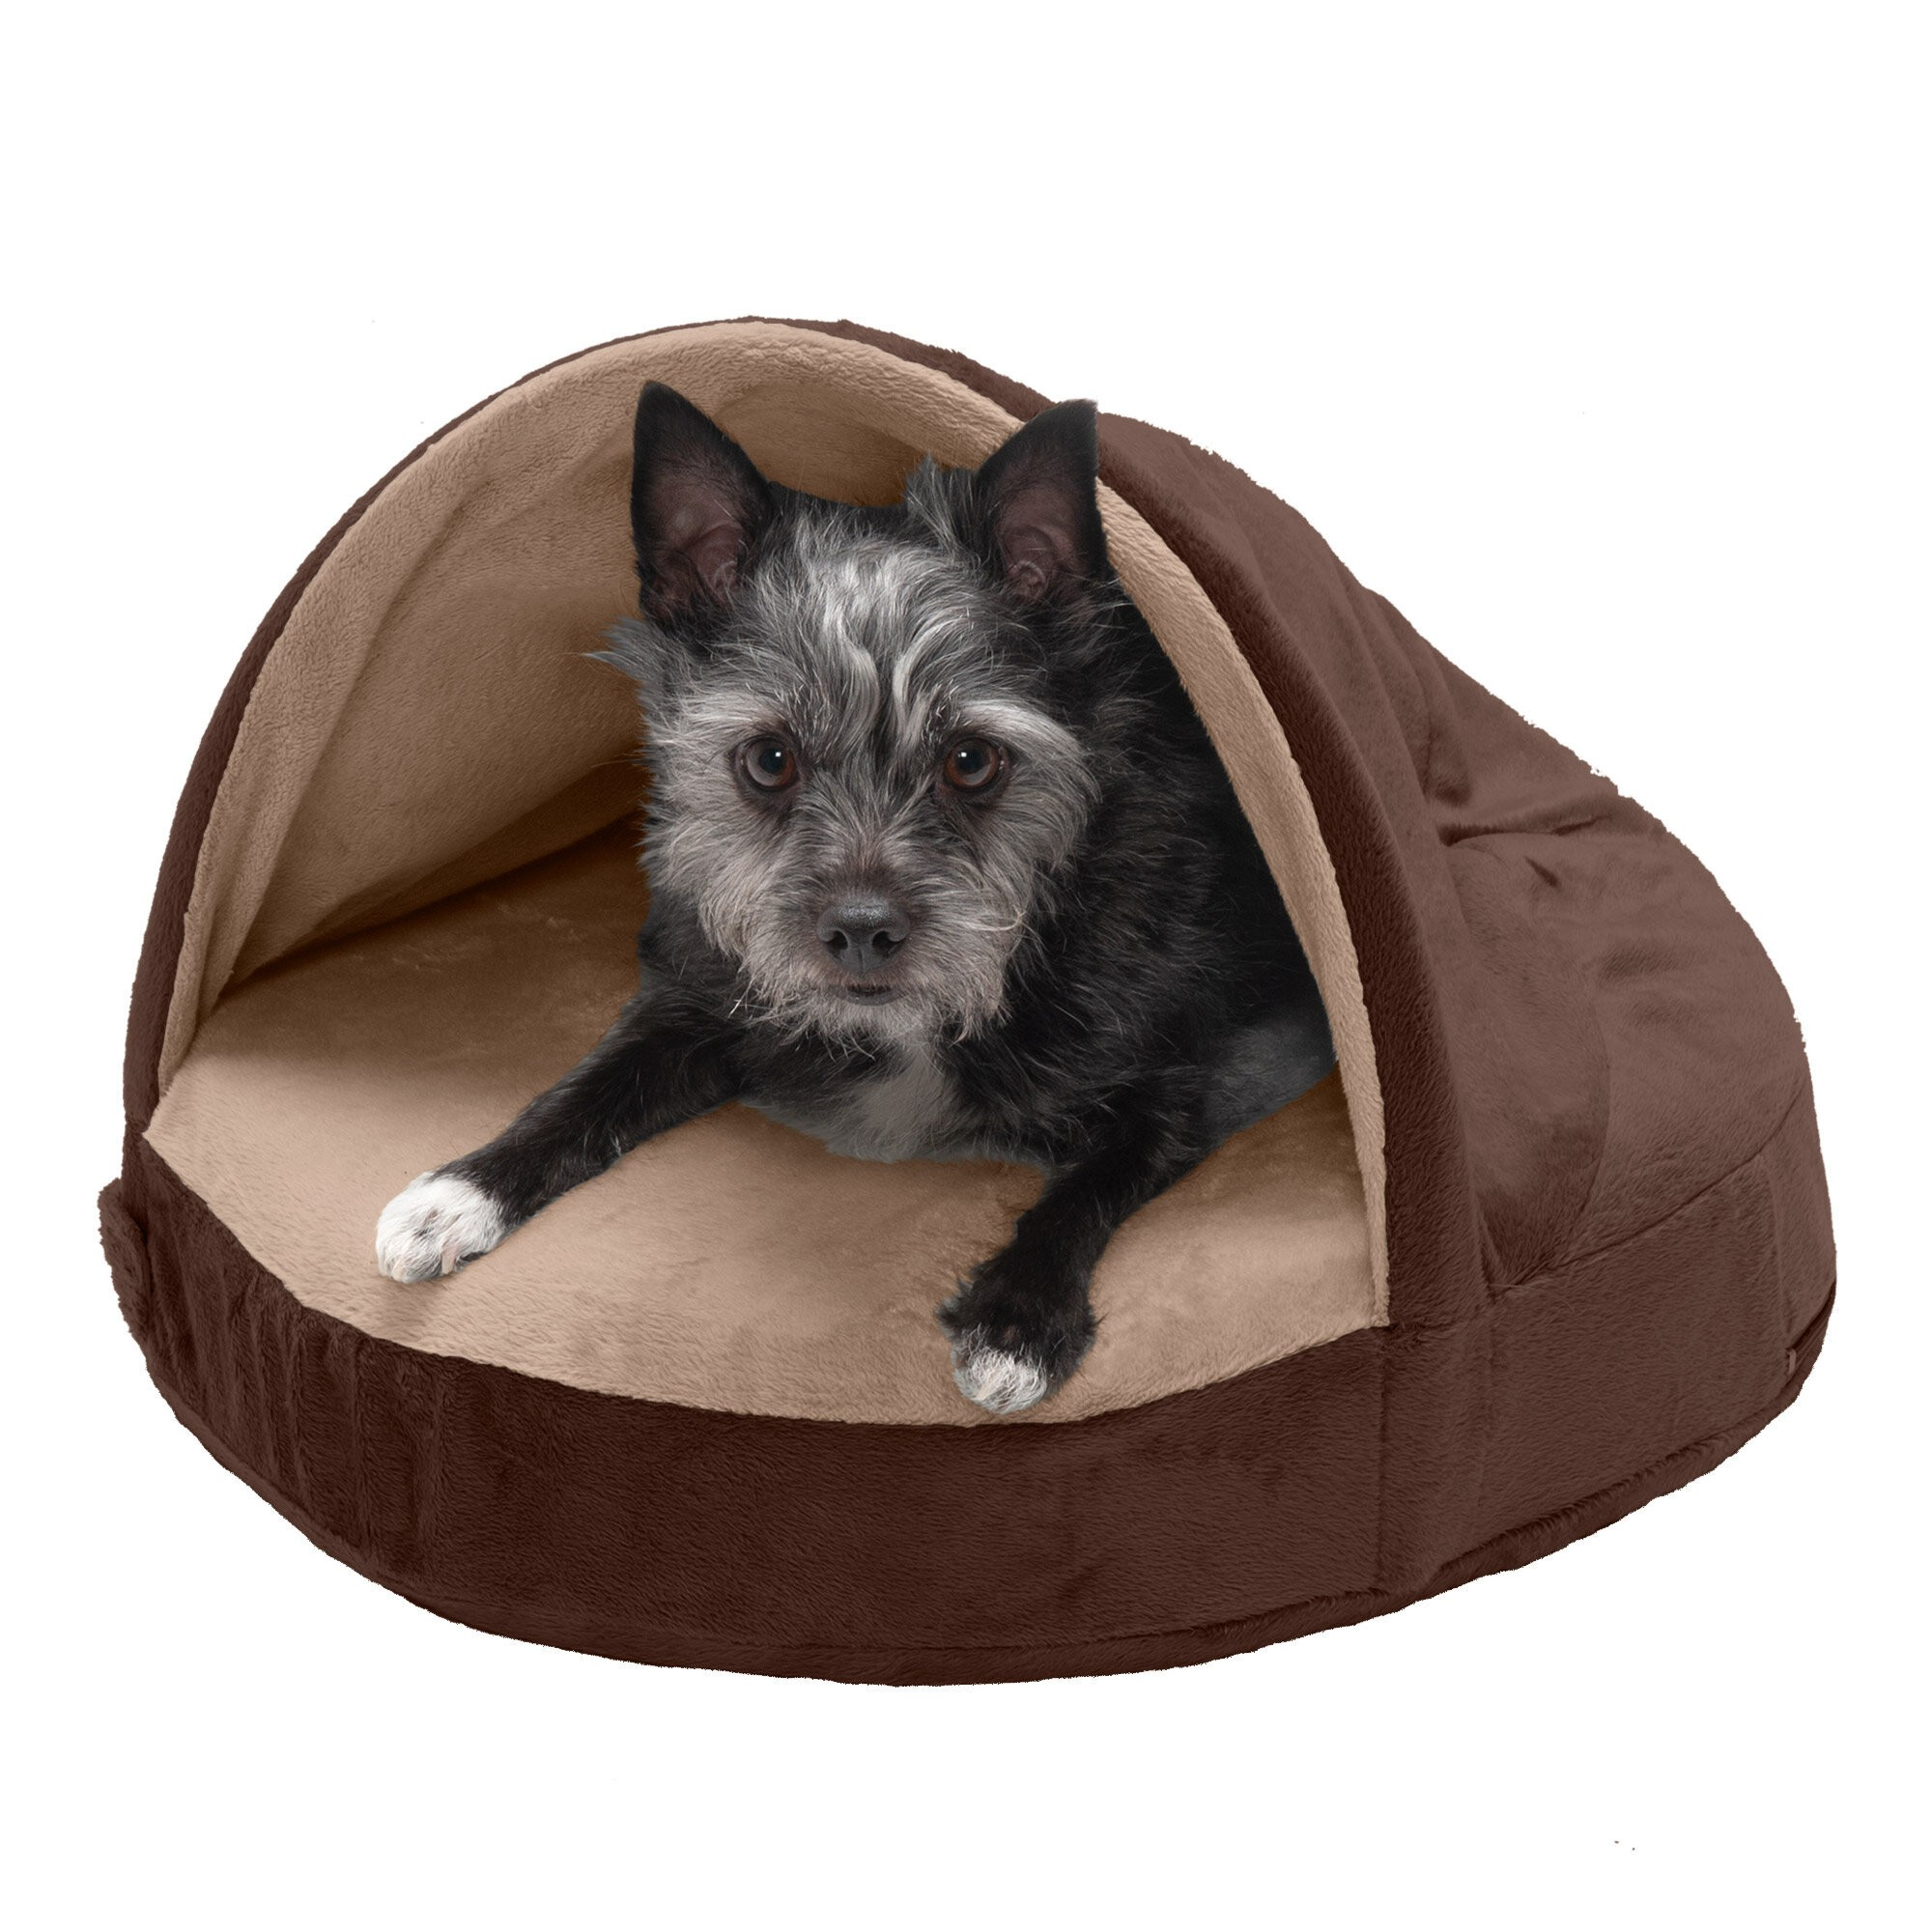 How To Choose A Hooded/Dome Dog Bed